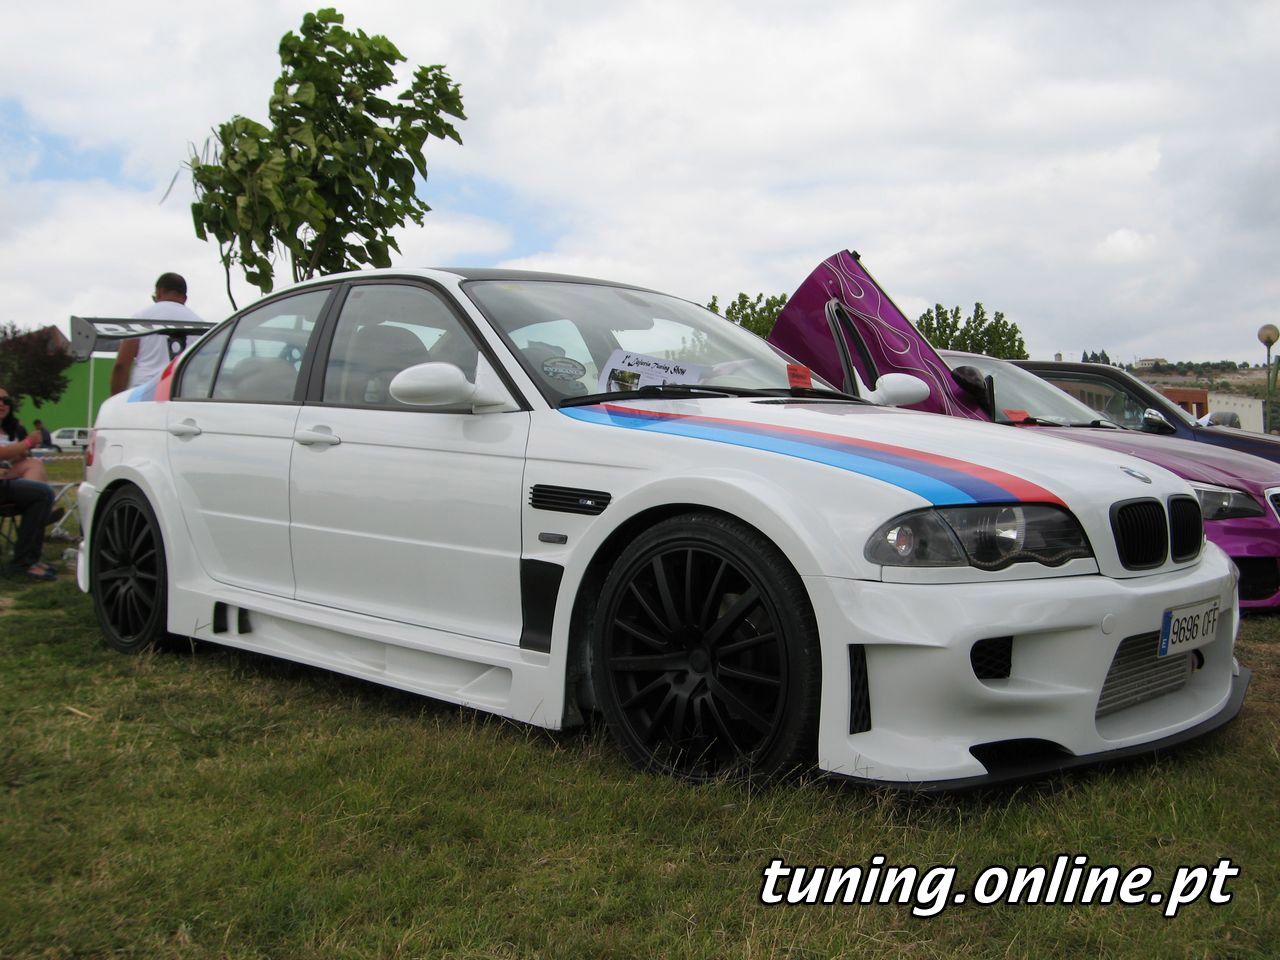 fotografia de bmw e46 tuning tuning online. Black Bedroom Furniture Sets. Home Design Ideas